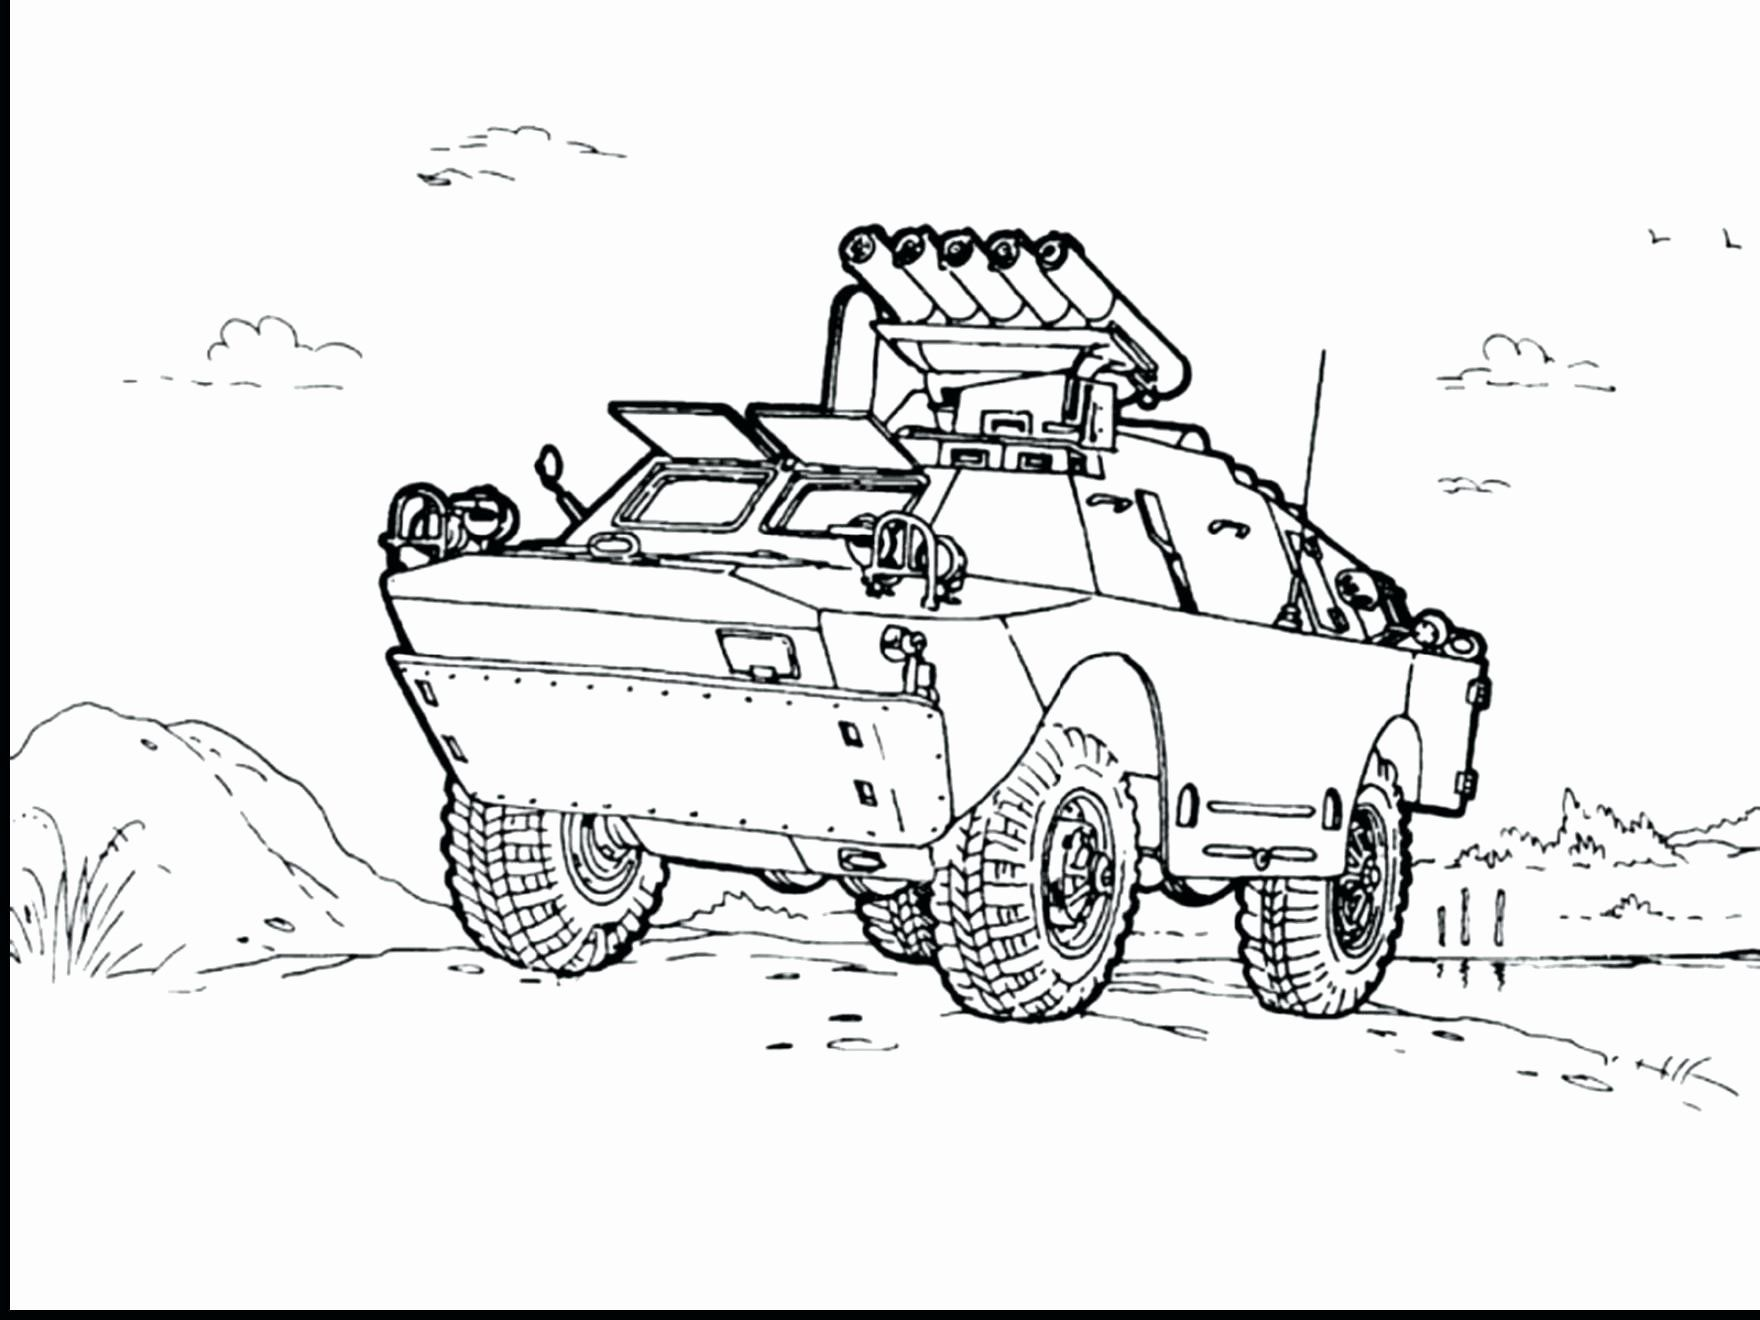 Coloring Pictures Of Military Vehicles Elegant Hummer Coloring Pages Coloring Pages Free Coloring Pages Flag Coloring Pages